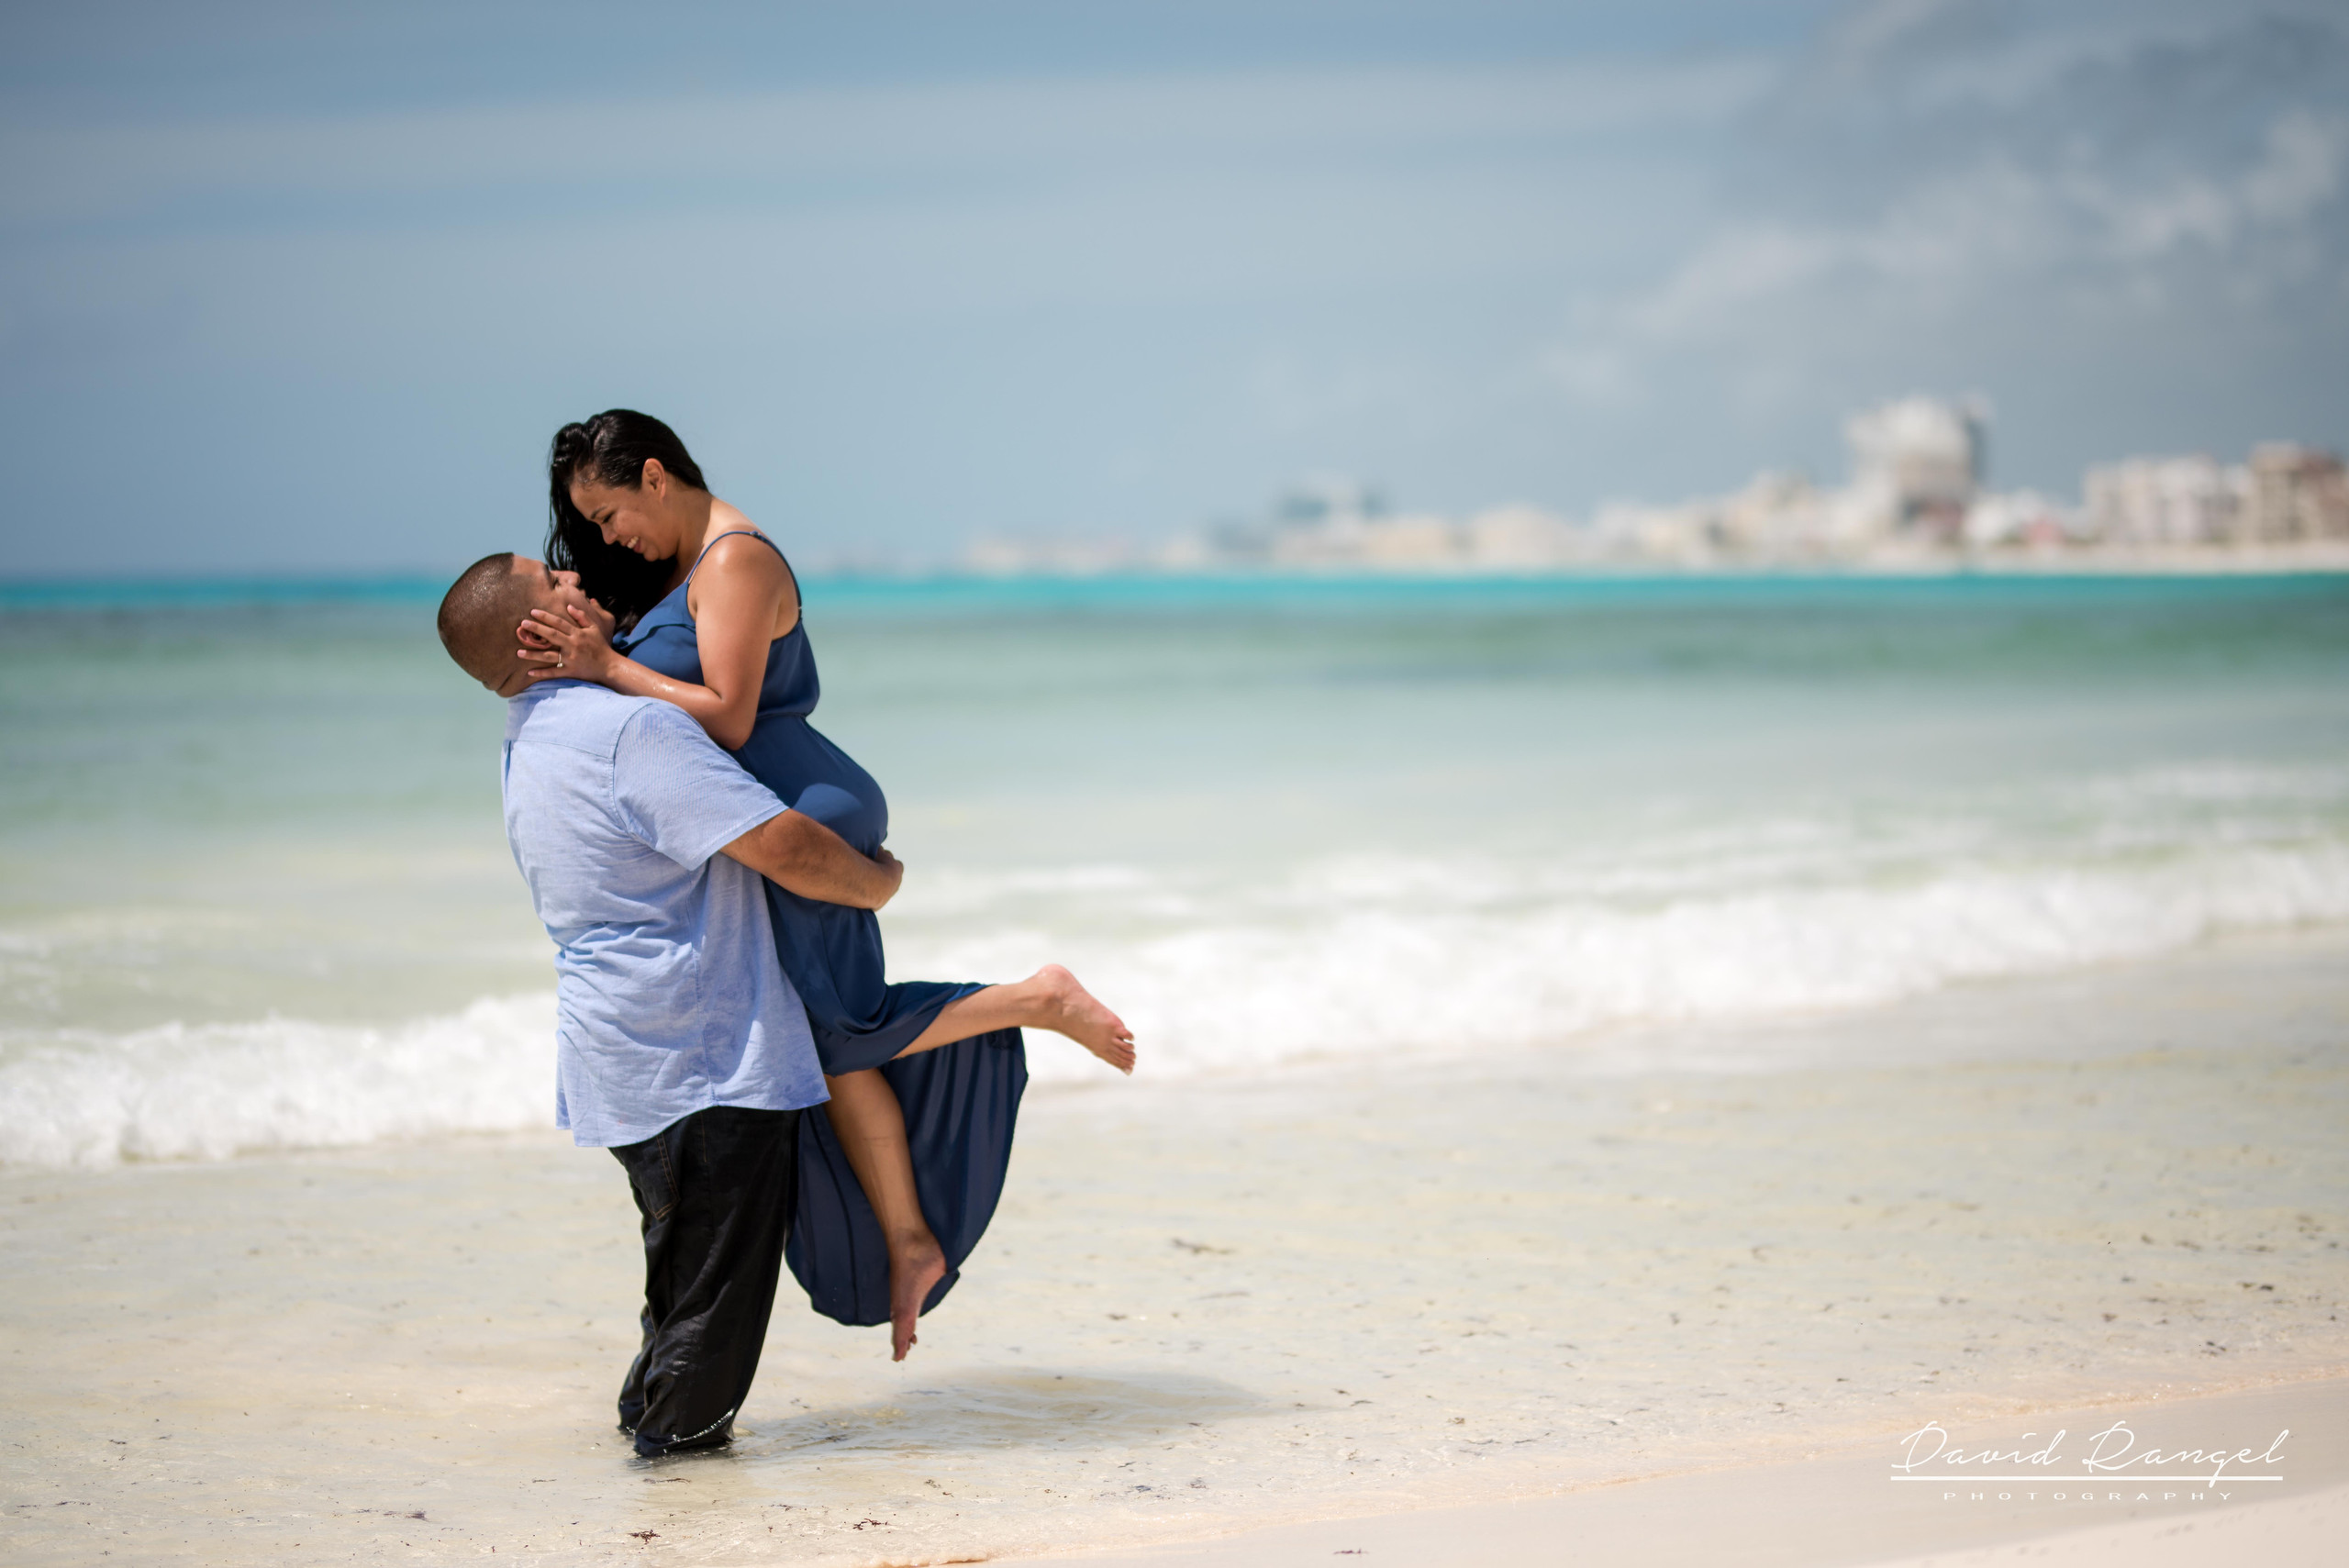 engagement+session+couple+love+photo+pre-wedding+beach+cancun+riviera+maya+hotel+zone+happiness+romantic